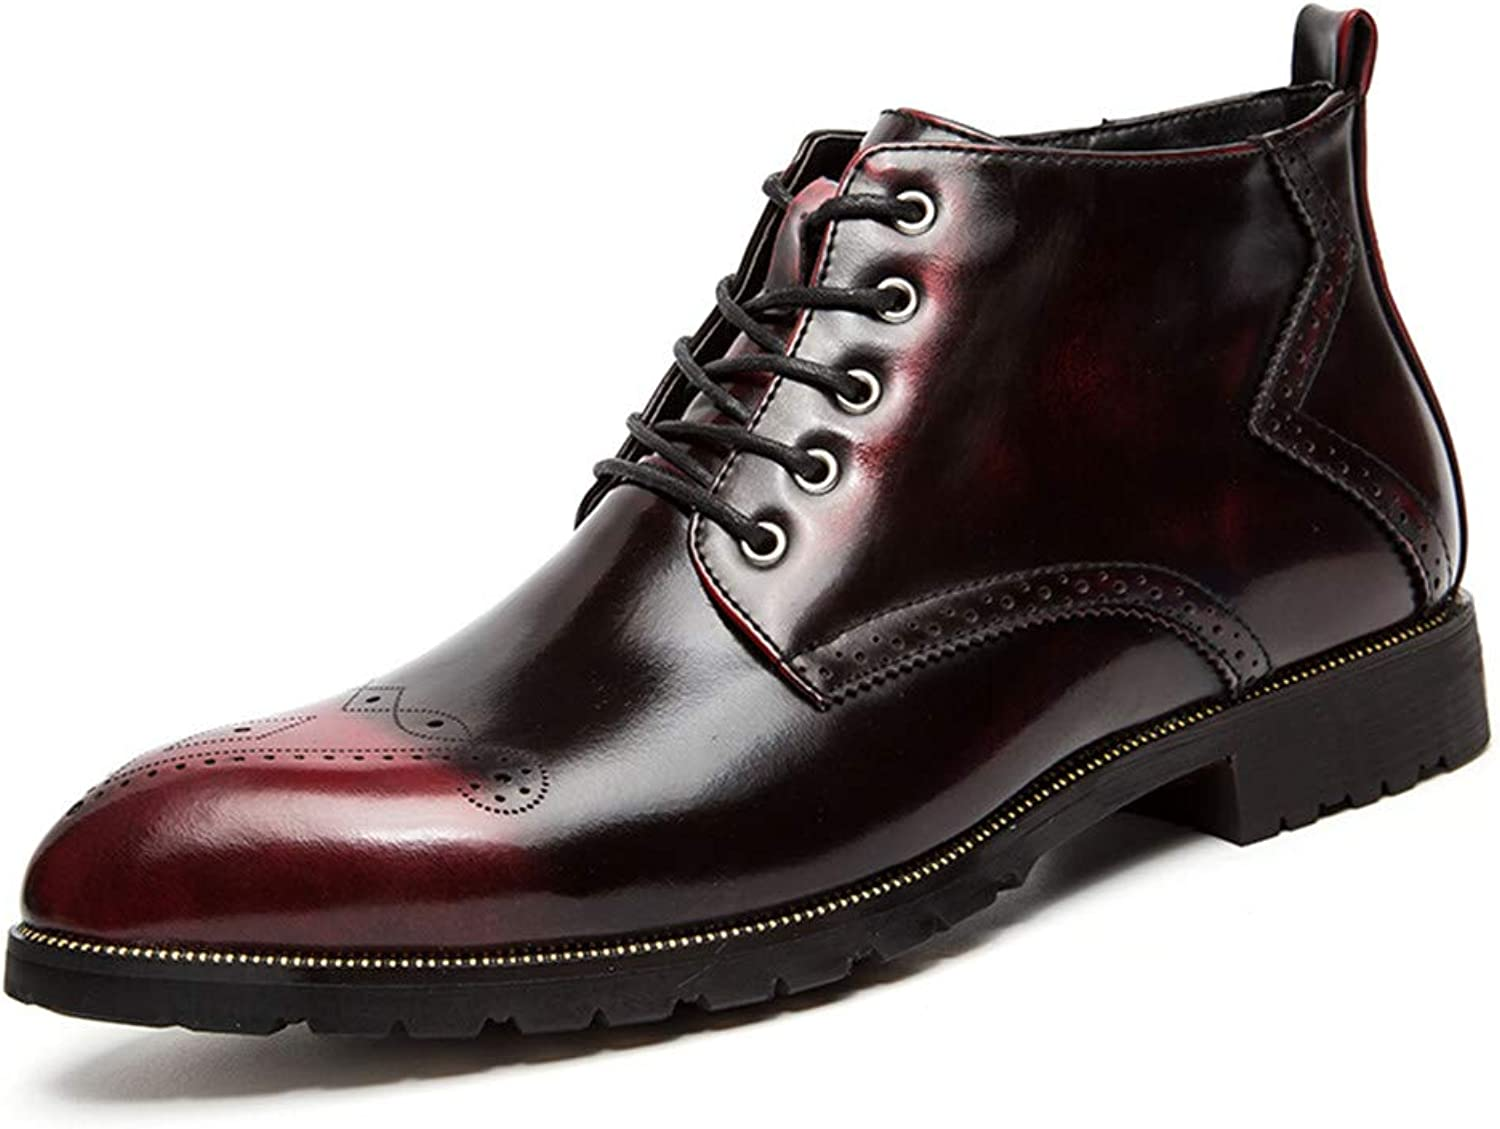 JIALUN-shoes Men's Fashion Ankle Boots Casual Classic Retro Brush color with Zipper top high Side Carved Brogue shoes